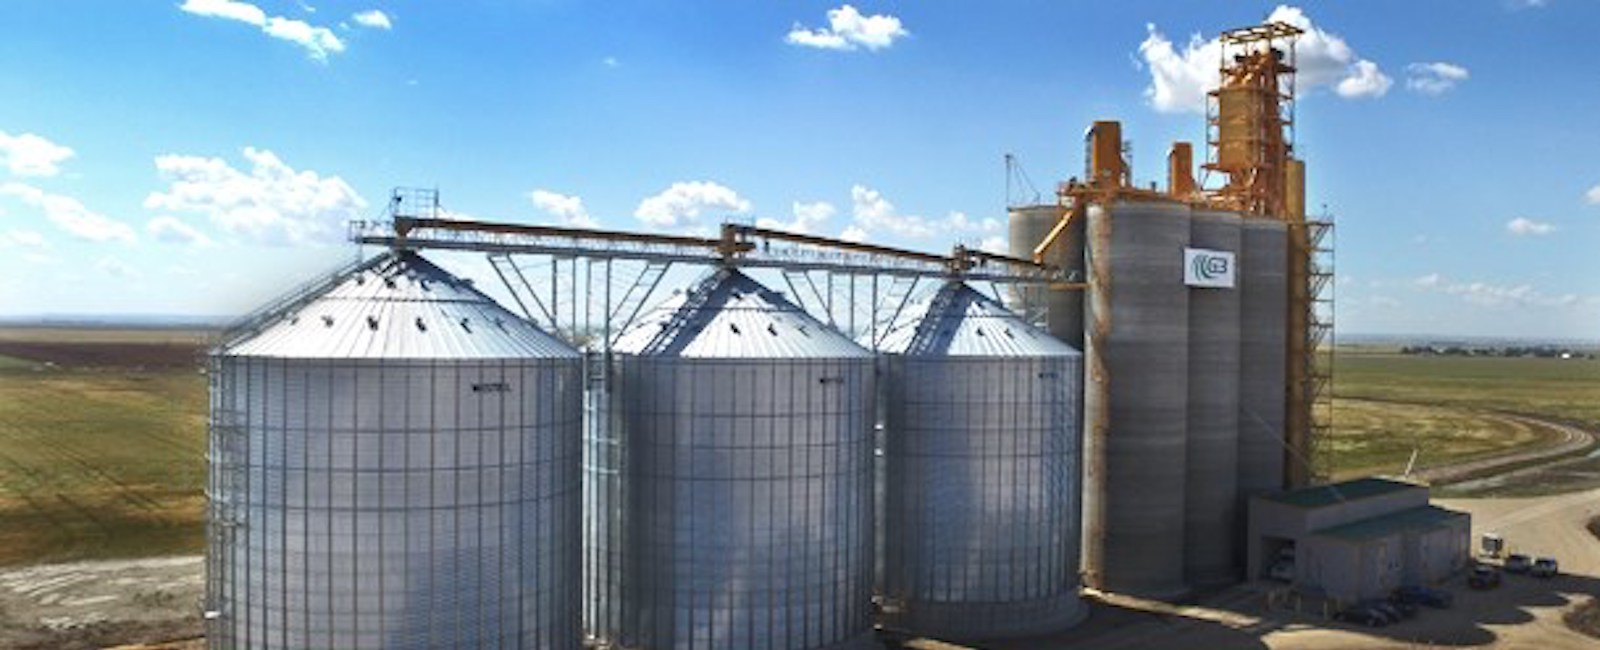 G3 Canada to build two new Grain Elevators with 42,000 t Storage Capacity, each